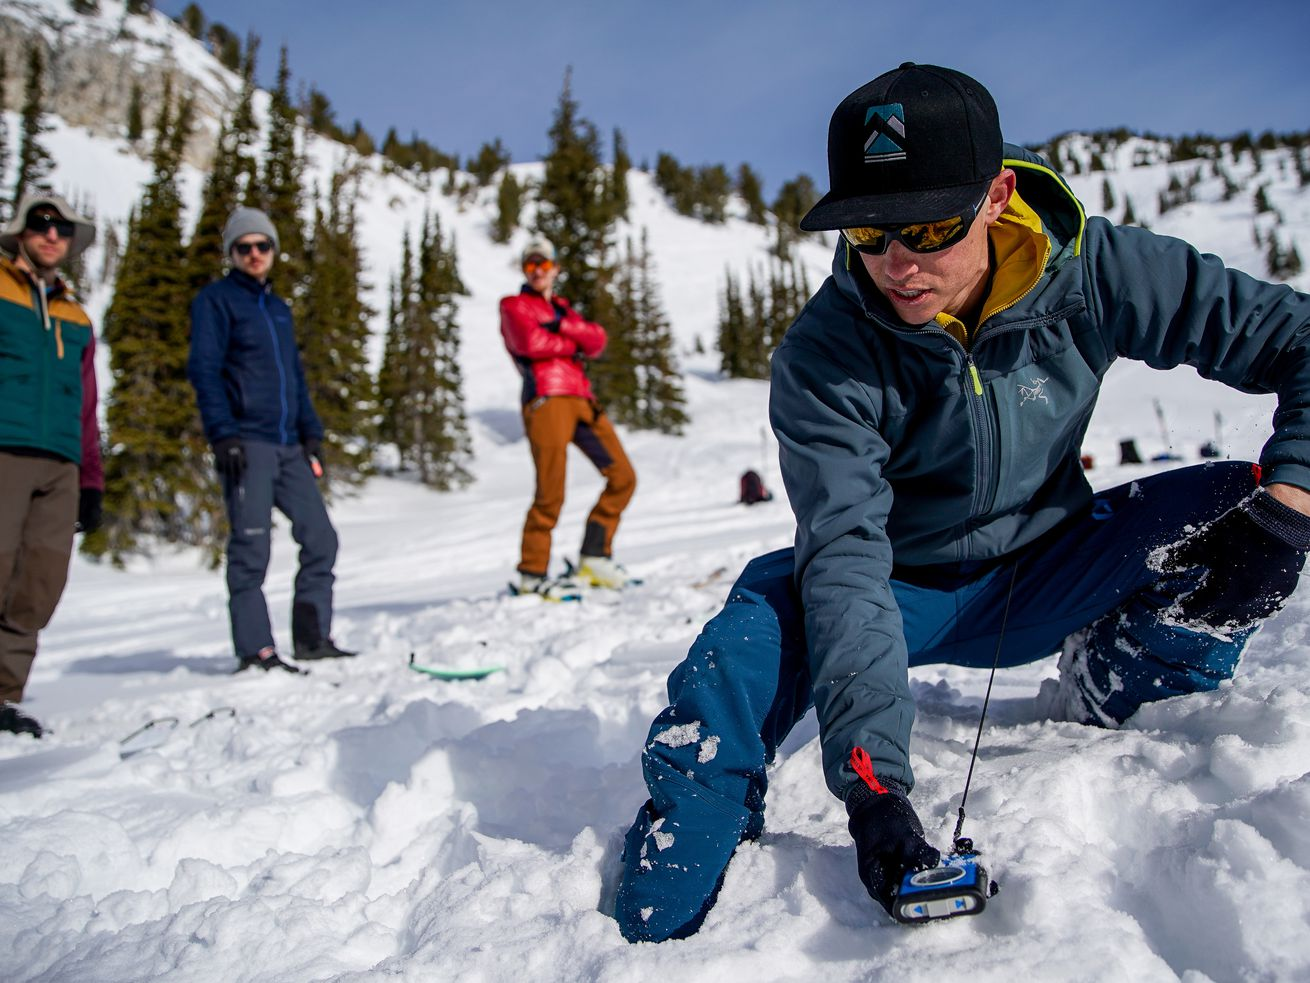 Utah Mountain Adventures Guide Joseph Hobby, right, demonstrates the basics of using an avalanche transceiver to search for a buried avalanche victim during a level 1 avalanche course in the Grizzly Gulch area of Little Cottonwood Canyon, near Alta, on Saturday, Dec. 21, 2019.